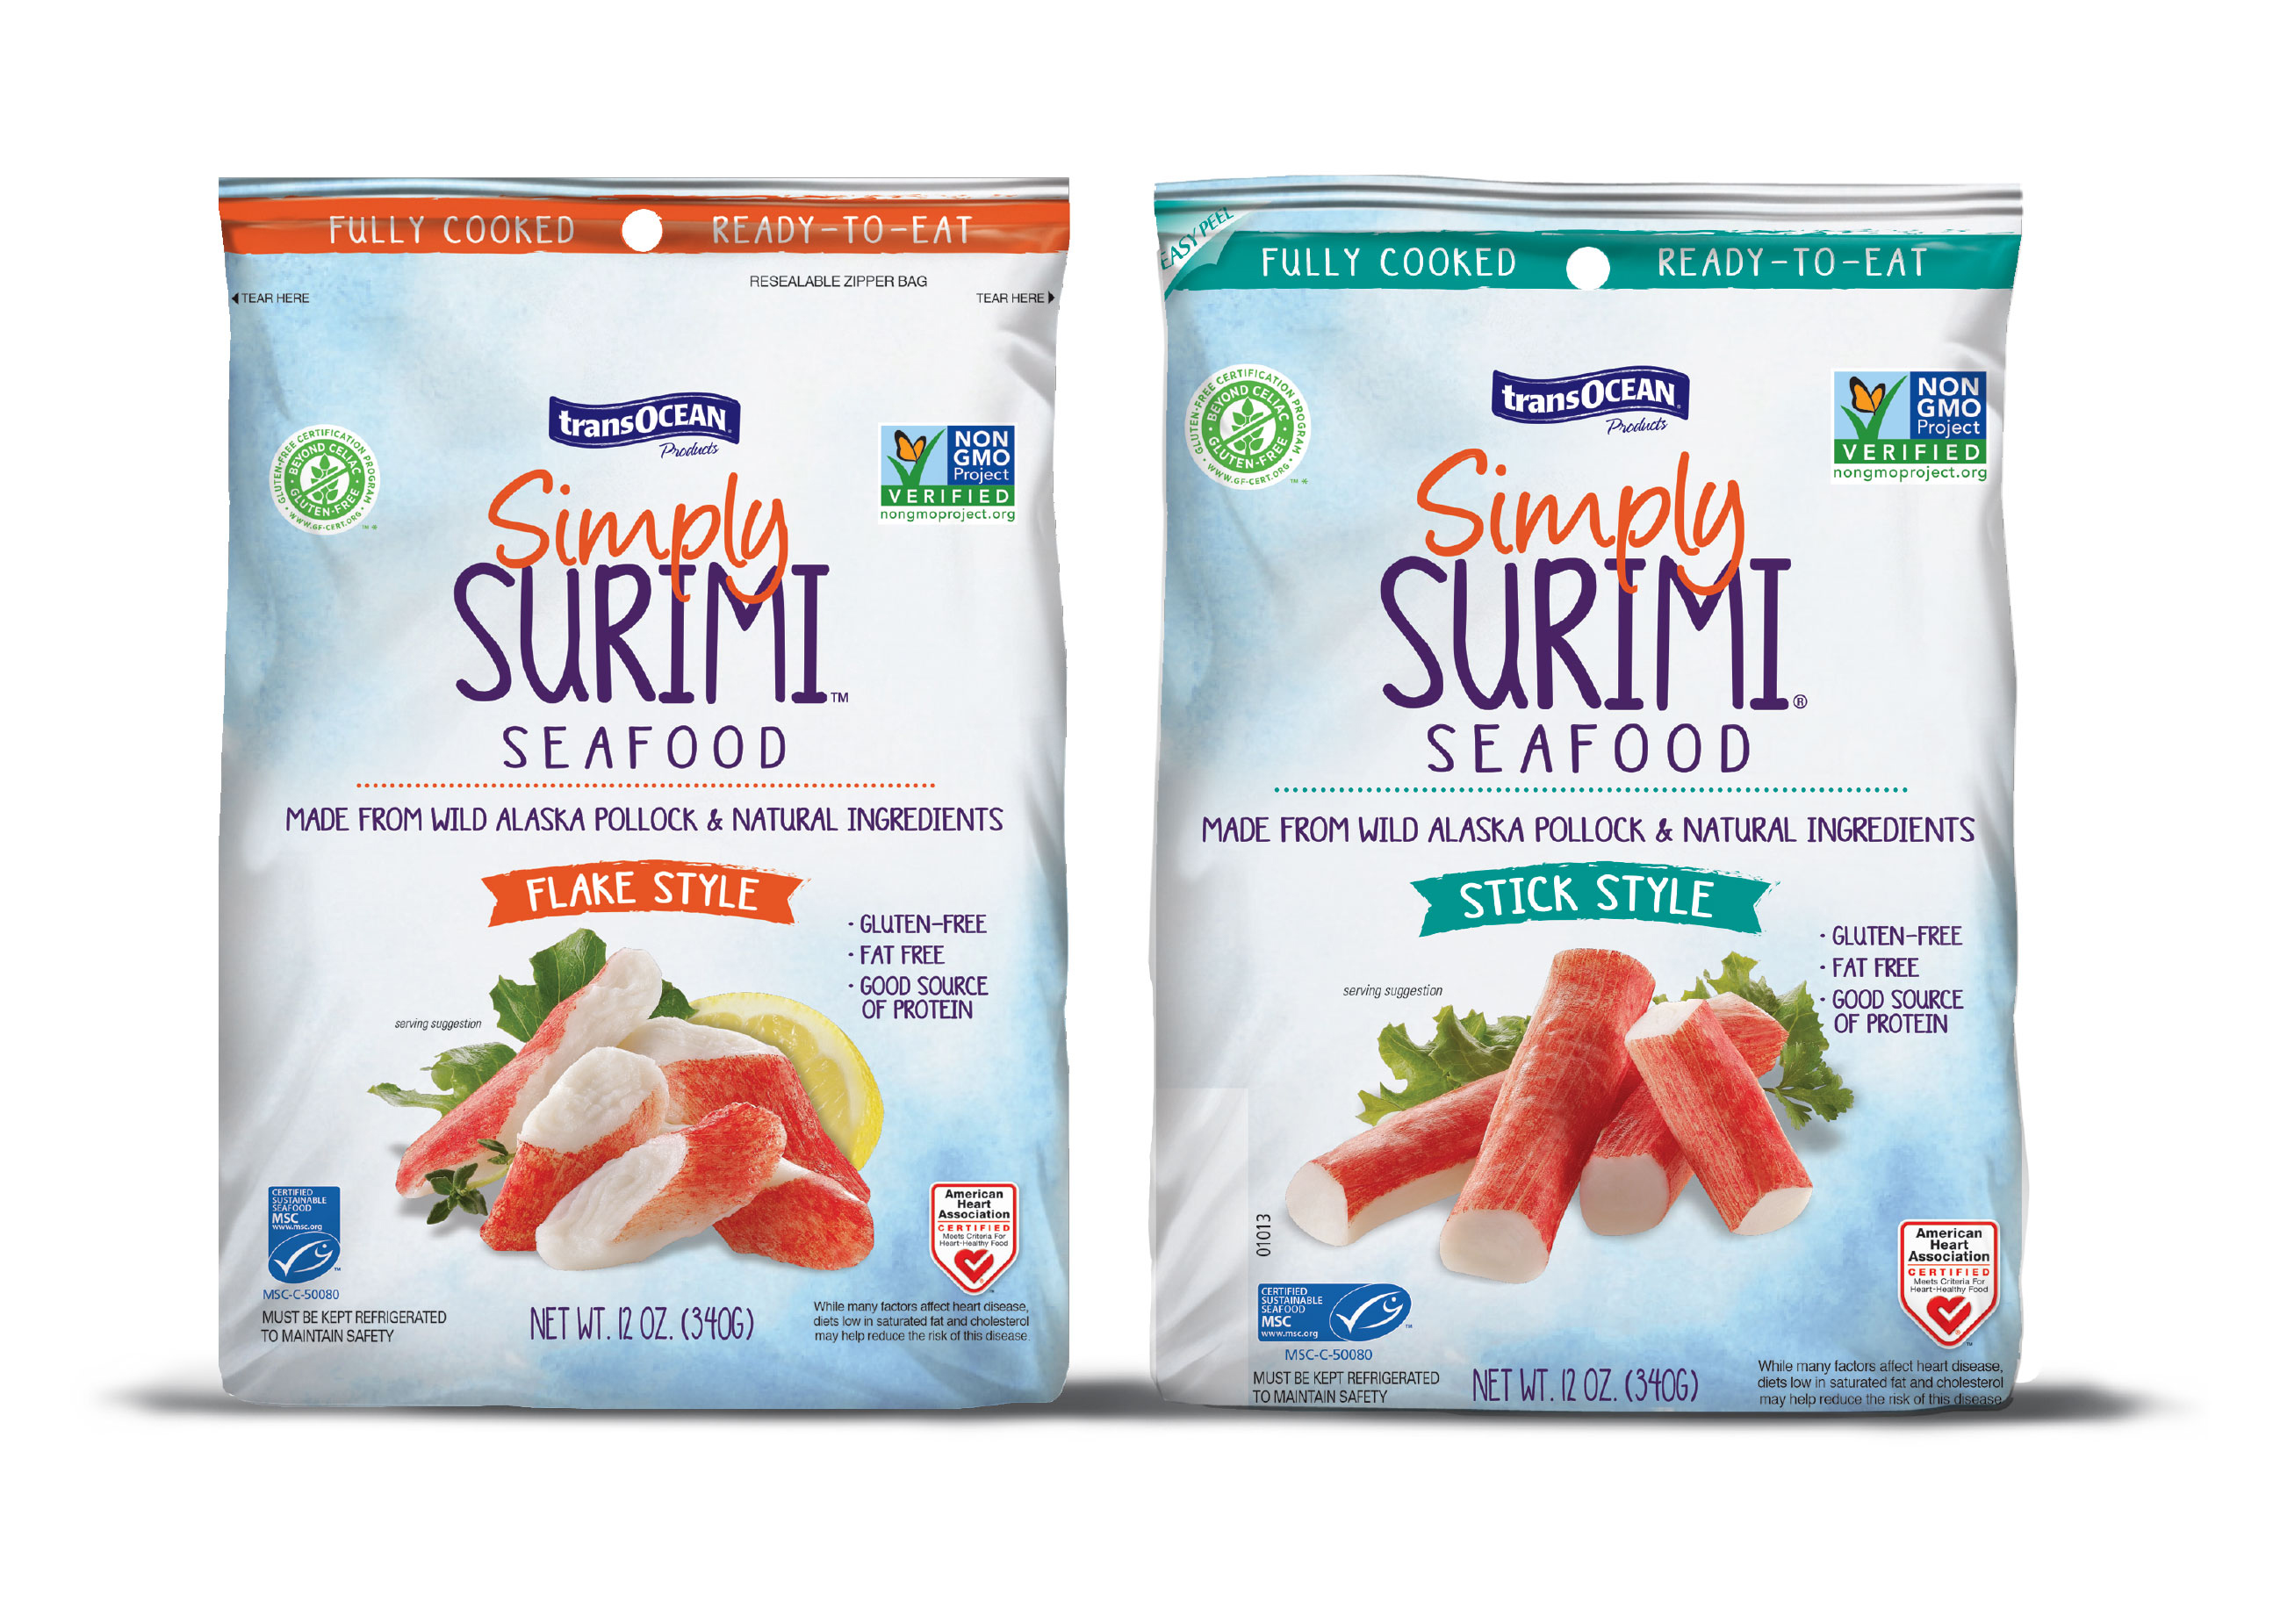 Search for msc certification news on seafoodnews seafoodnews the non gmo project a non profit organization dedicated to building and protecting a non gmo food supply has verified trans ocean products simply surimi xflitez Choice Image